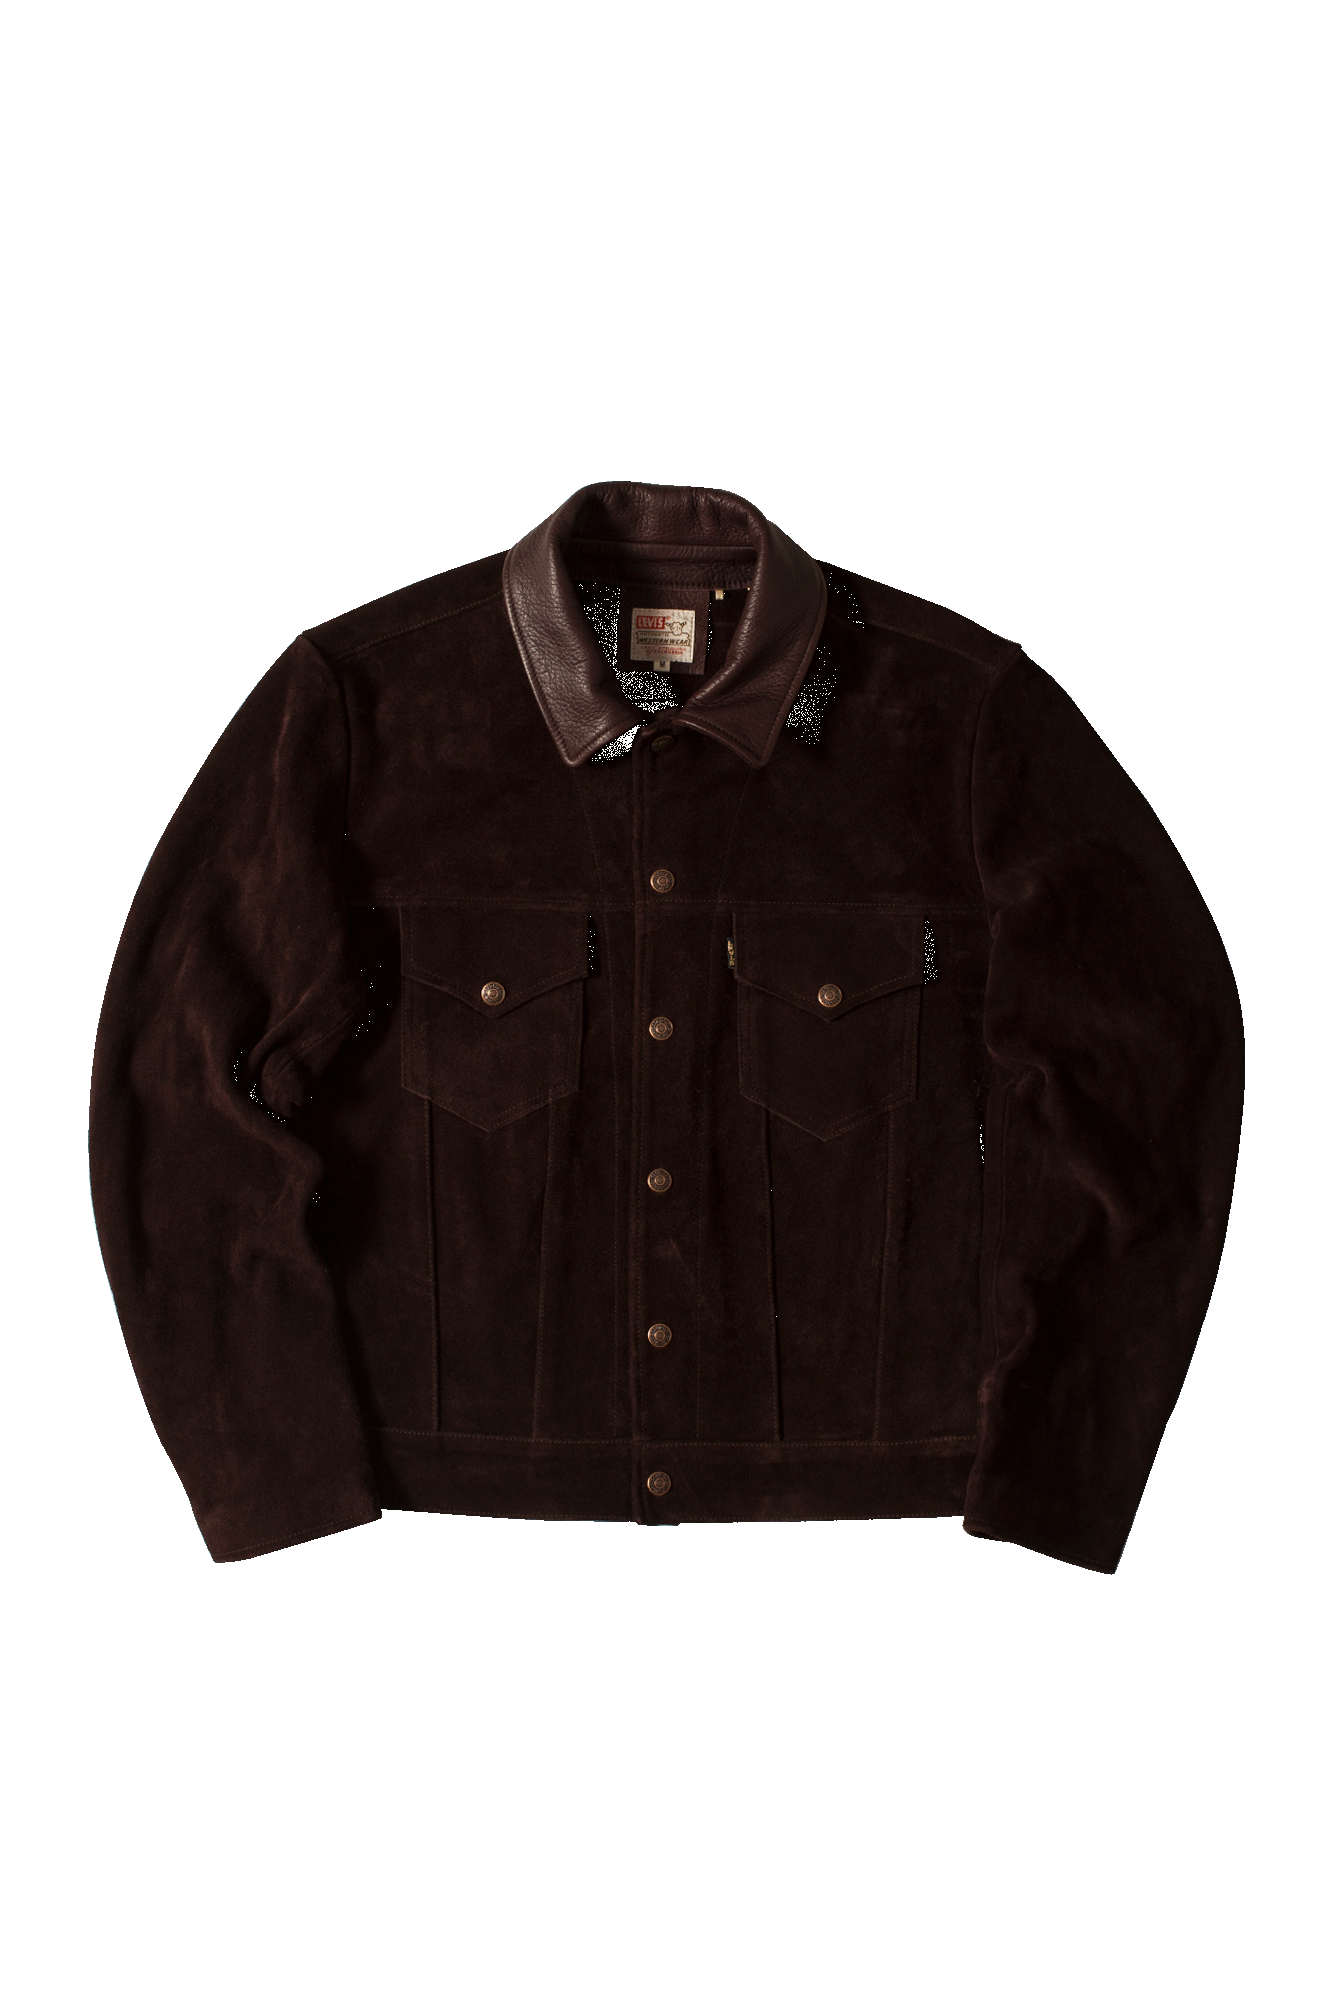 1960s Suede Trucker Chocolate Jacket Marrone